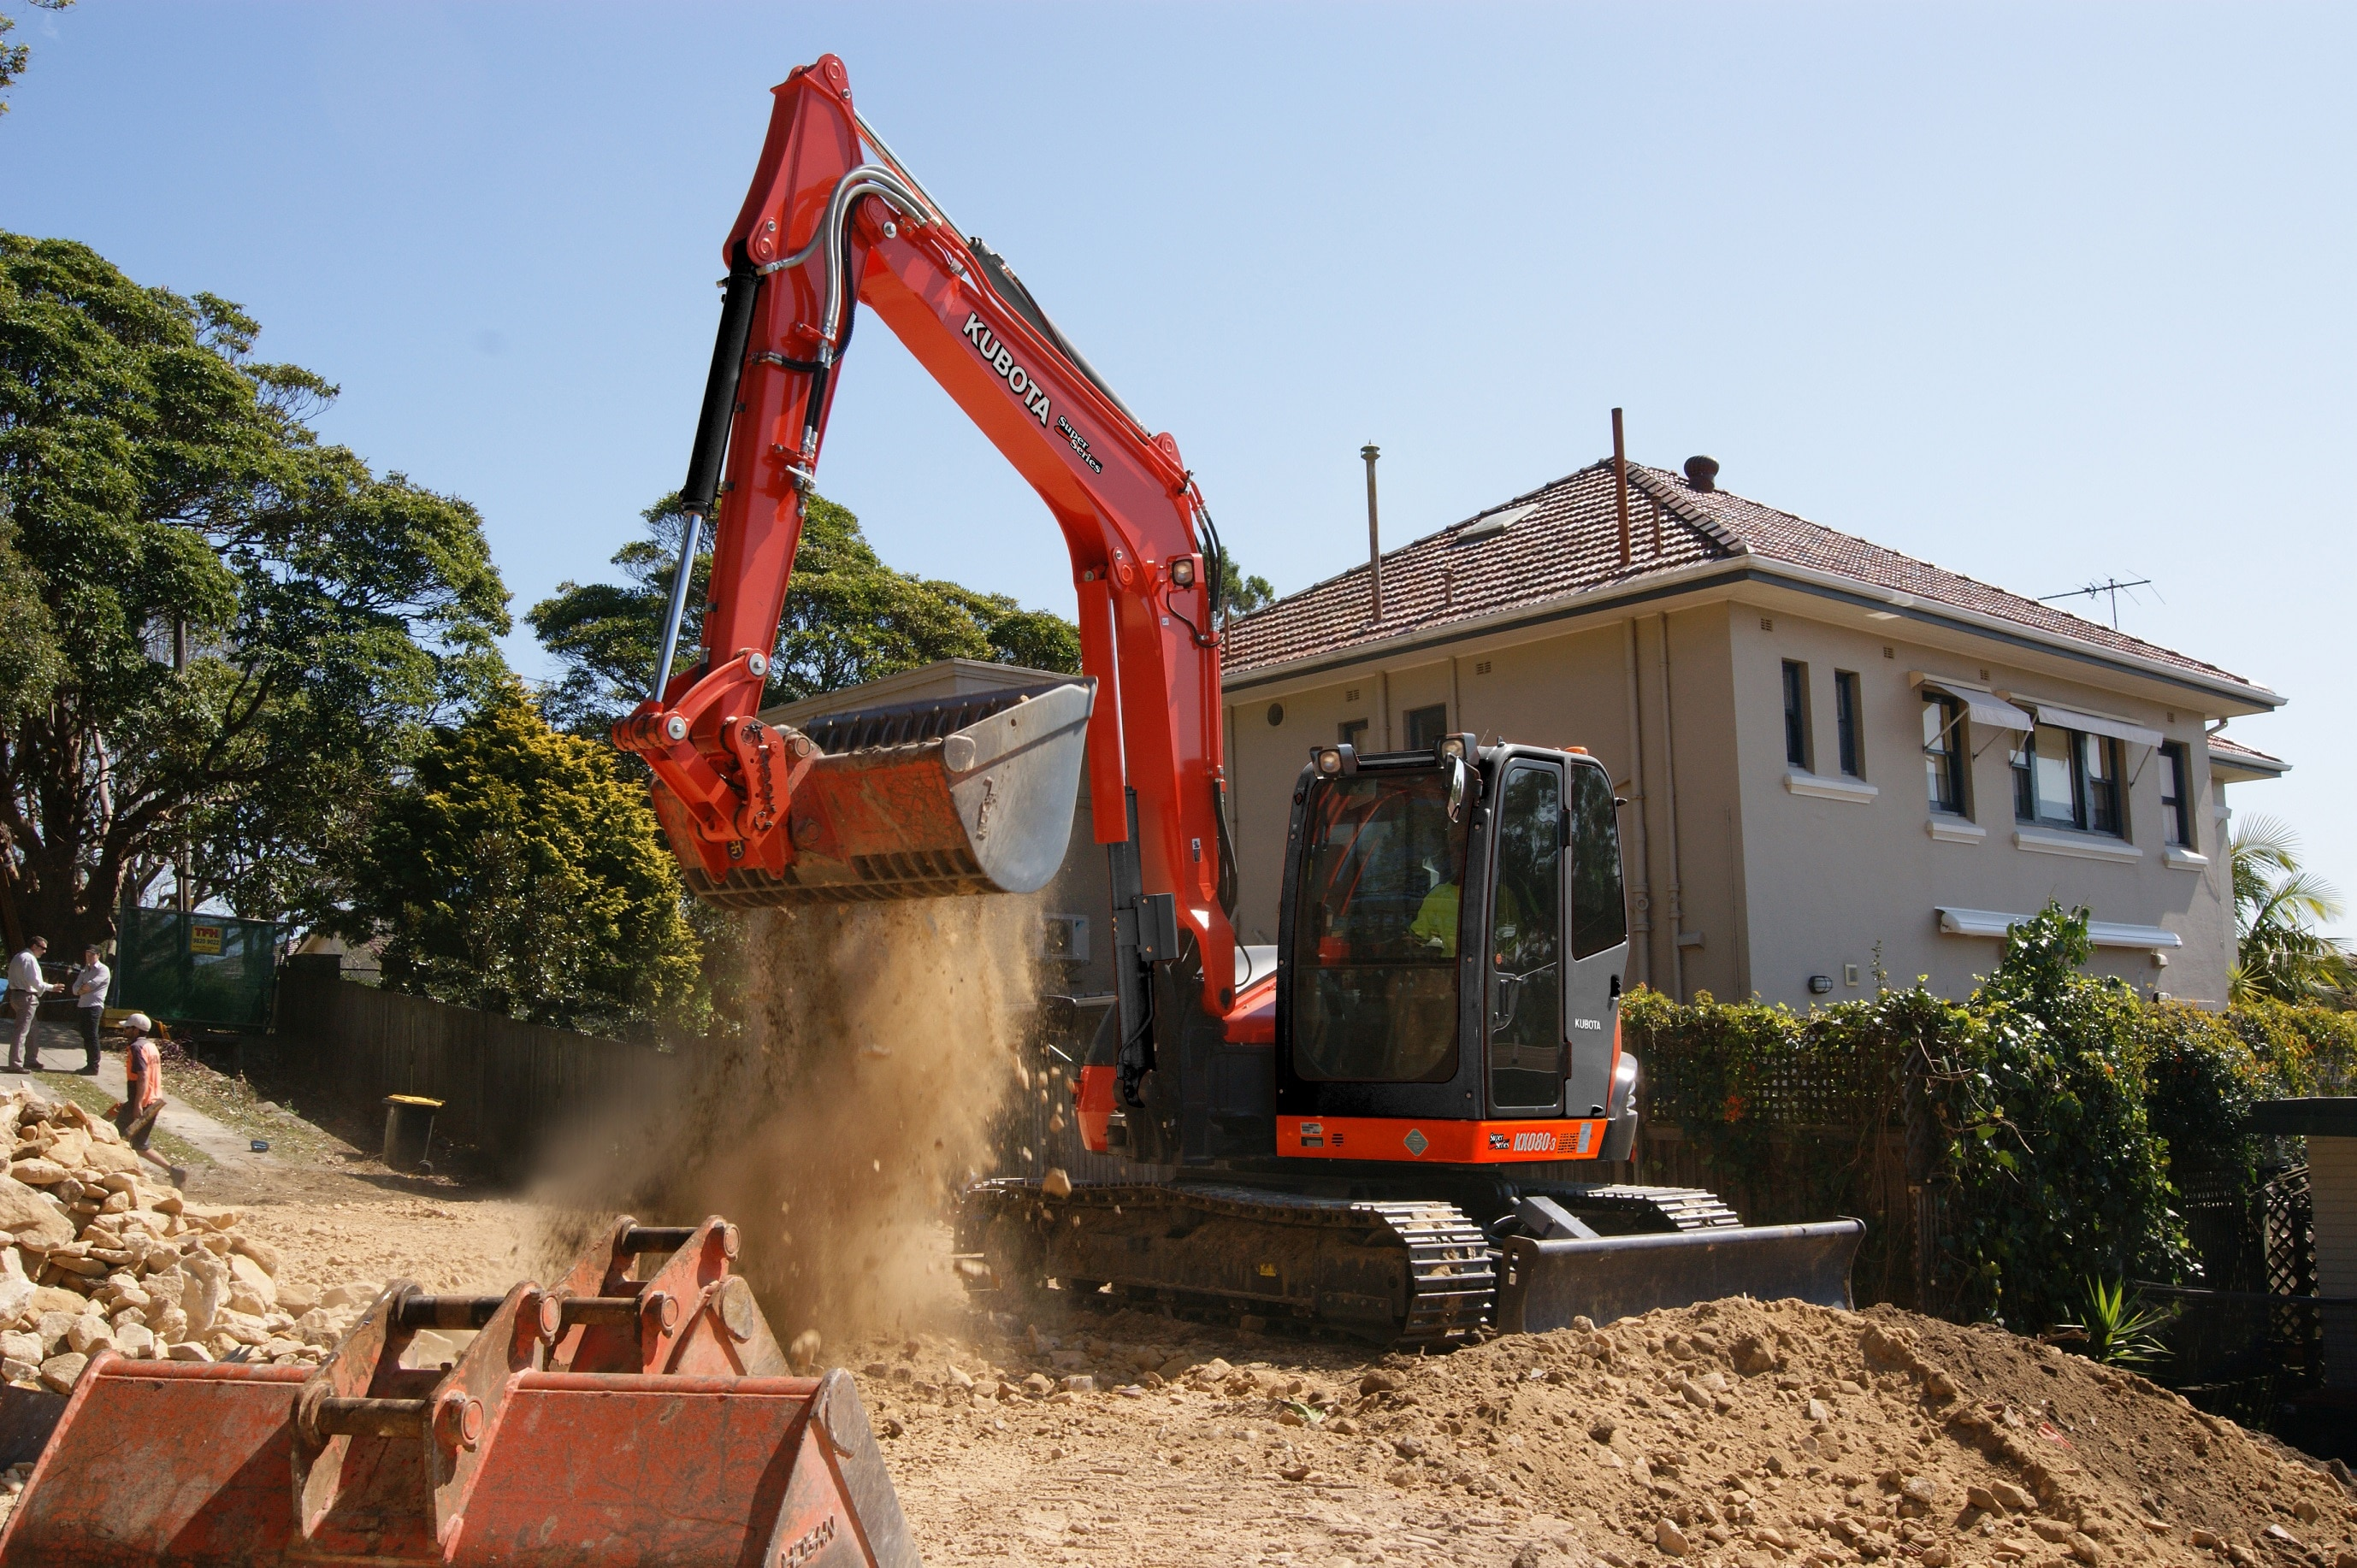 Kubota has been involved in the compact excavator industry for nearly four decades, leading the sector with its technological innovations.